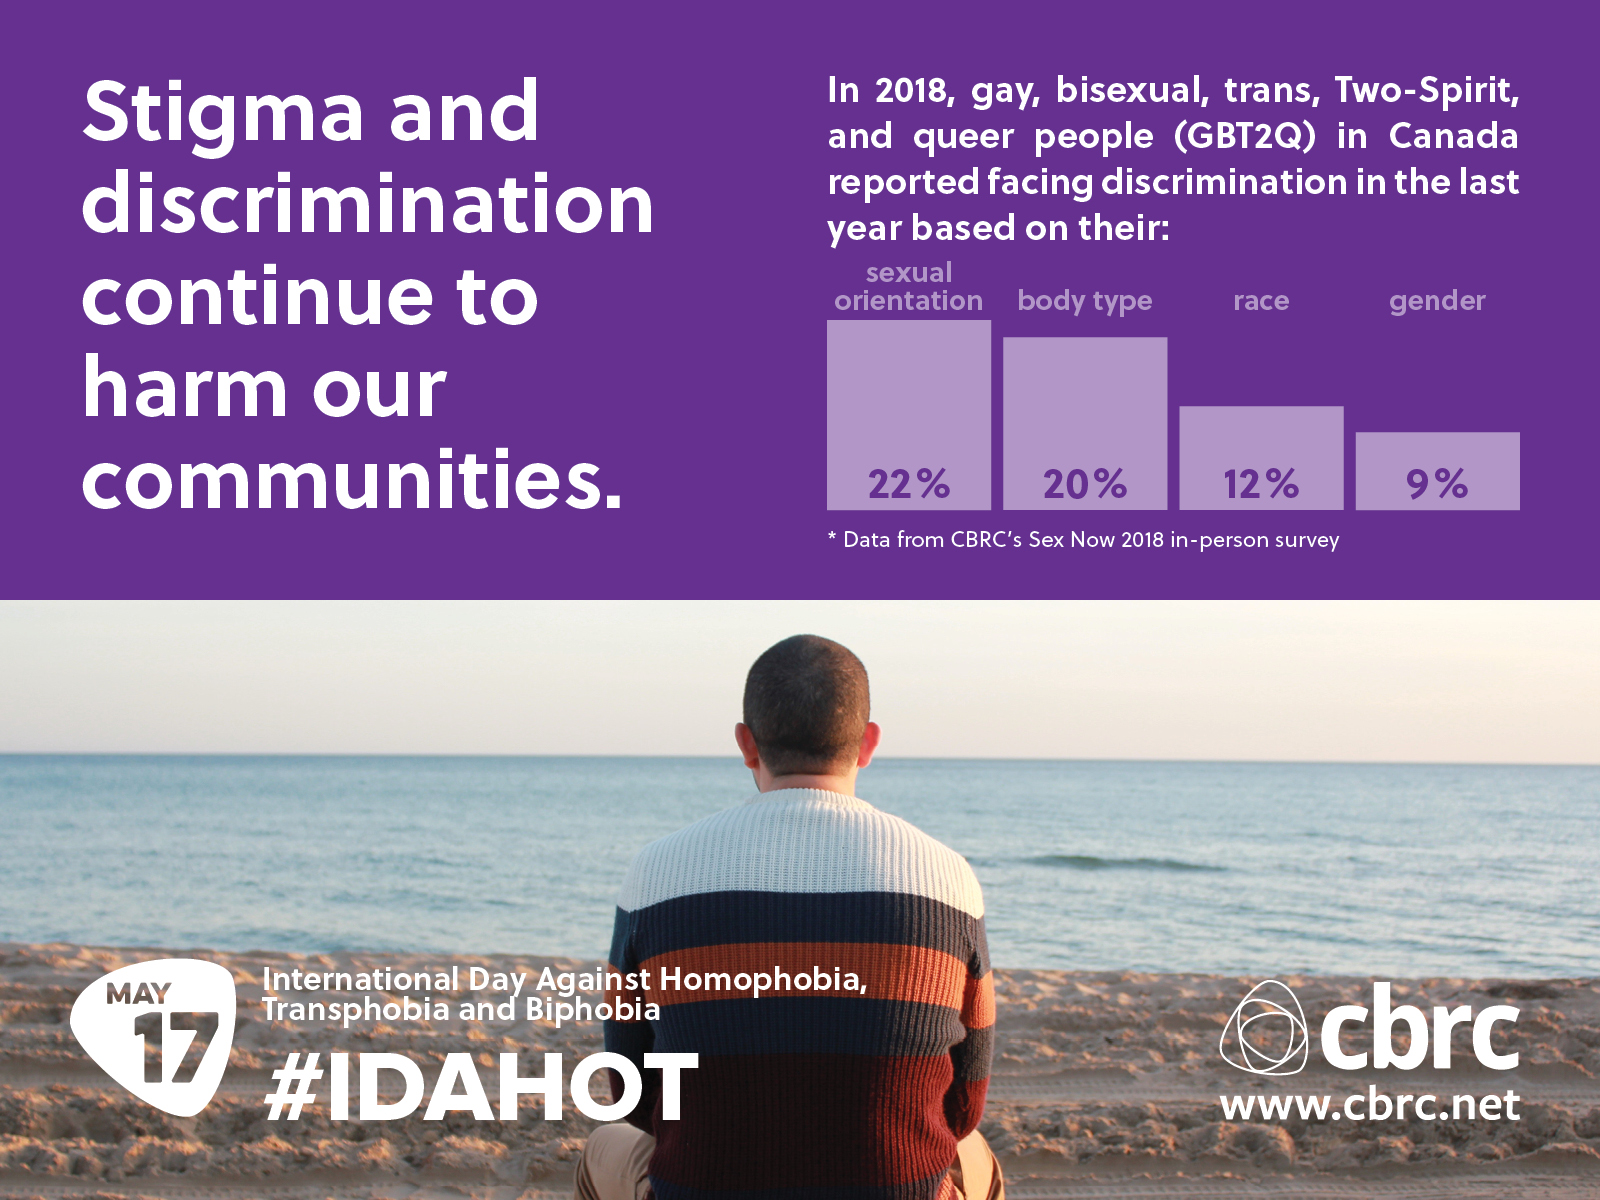 Stigma and discrimination continue to harm our communities. In 2018, gay bisexual, trans, Two-Spirit, and queer people (GBT2Q) in Canada reported facing discrimination in the last year based on their: sexual orientation 22%, body type 20%, race 12%, gender 9%\